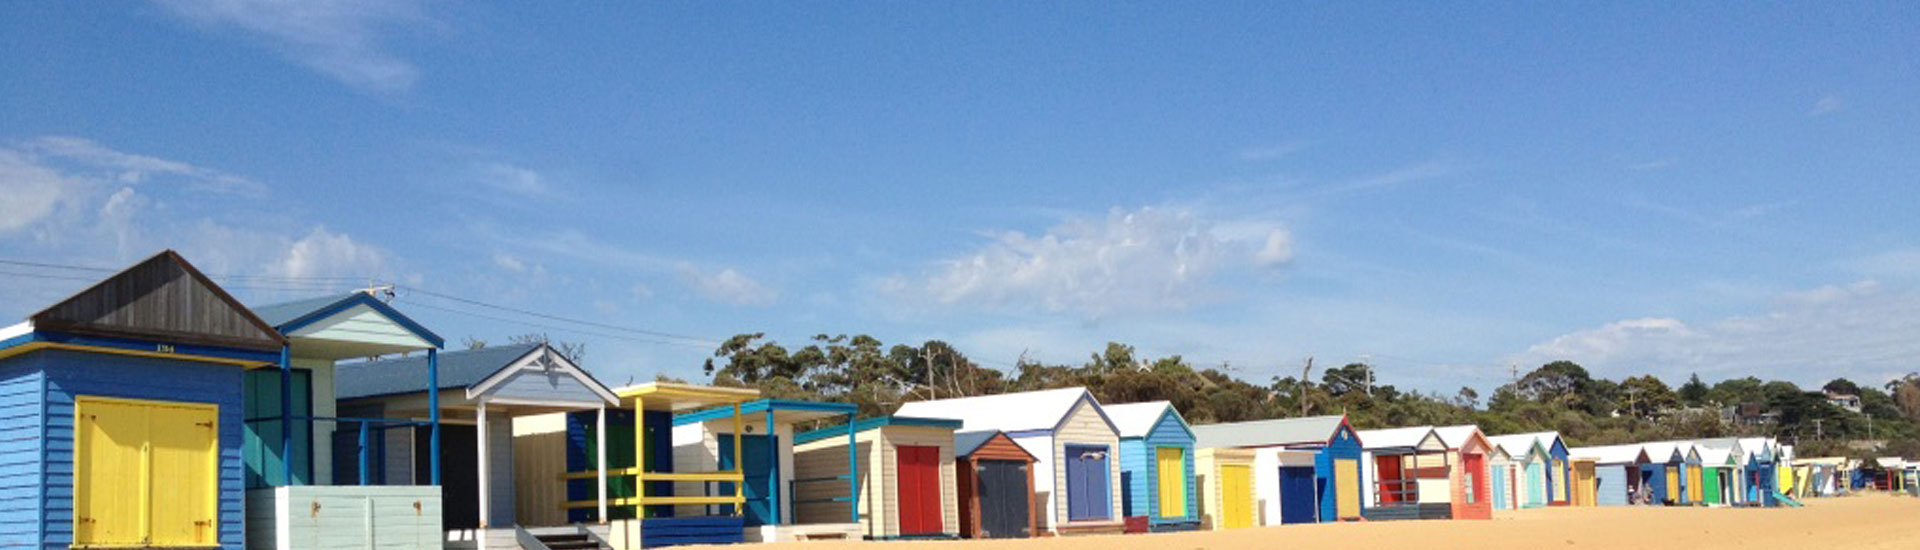 Mount Martha Beach Boxes